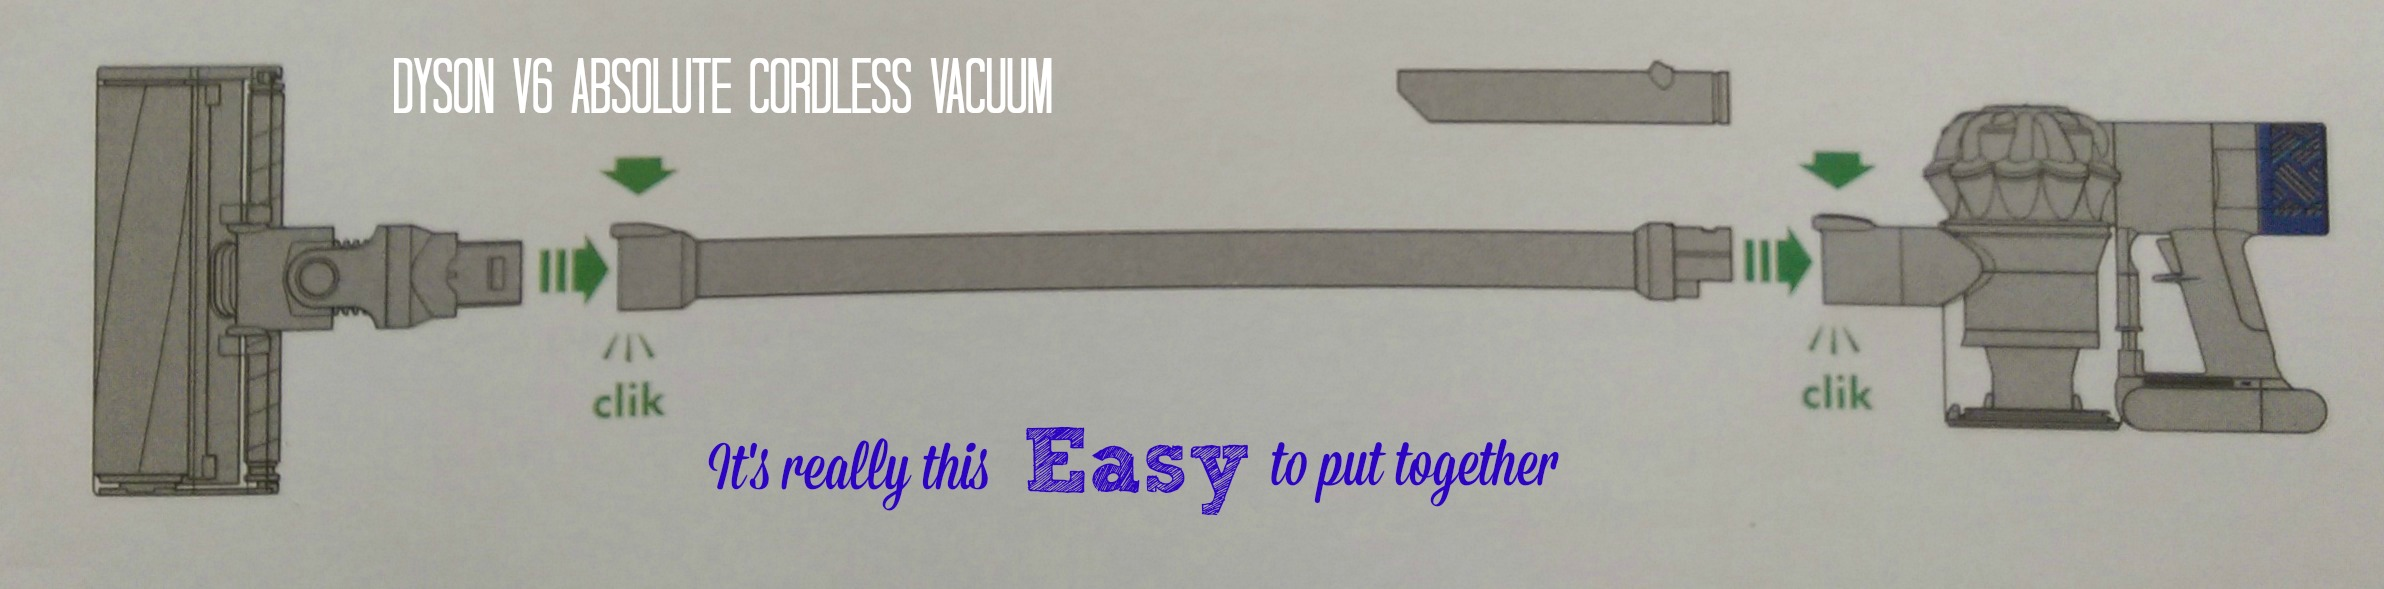 dyson v6 absolute cordless vacuum at best buy assembly 2